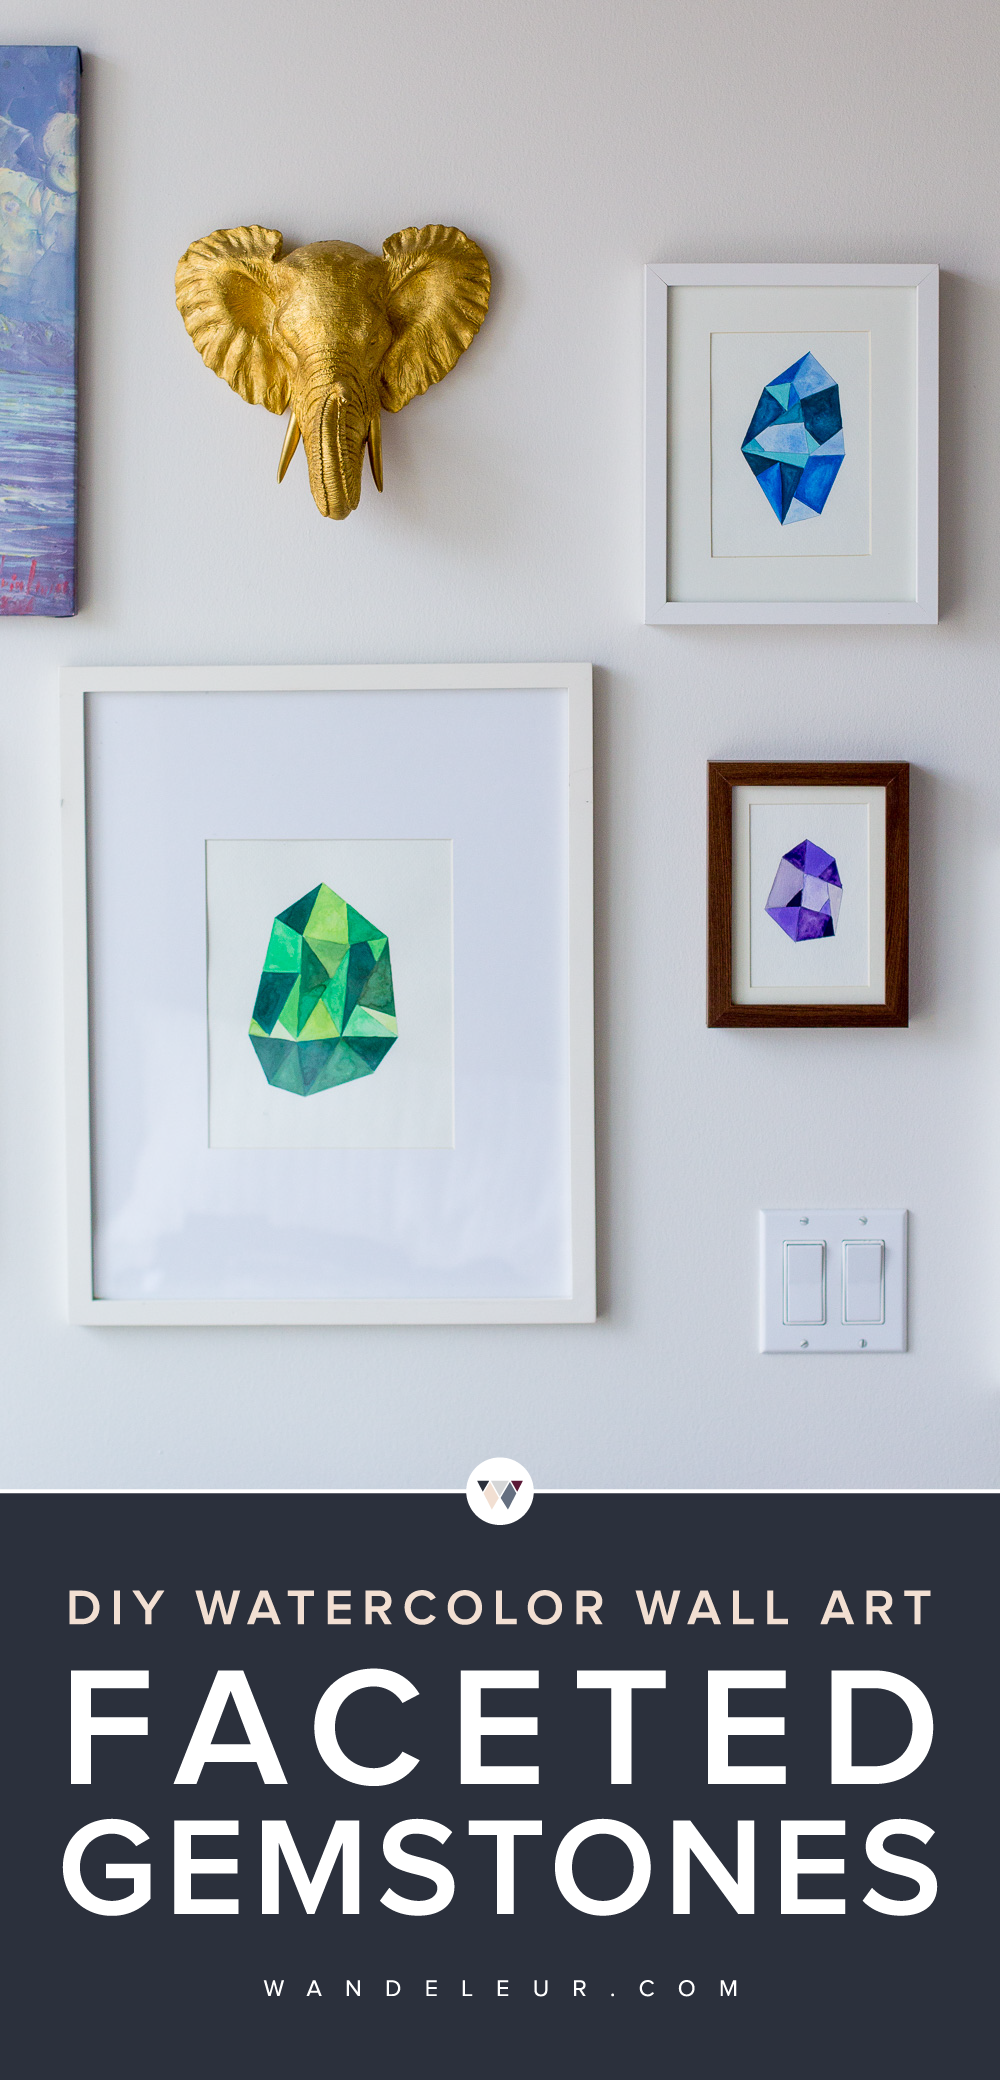 3-faceted-gemstone-wall-art